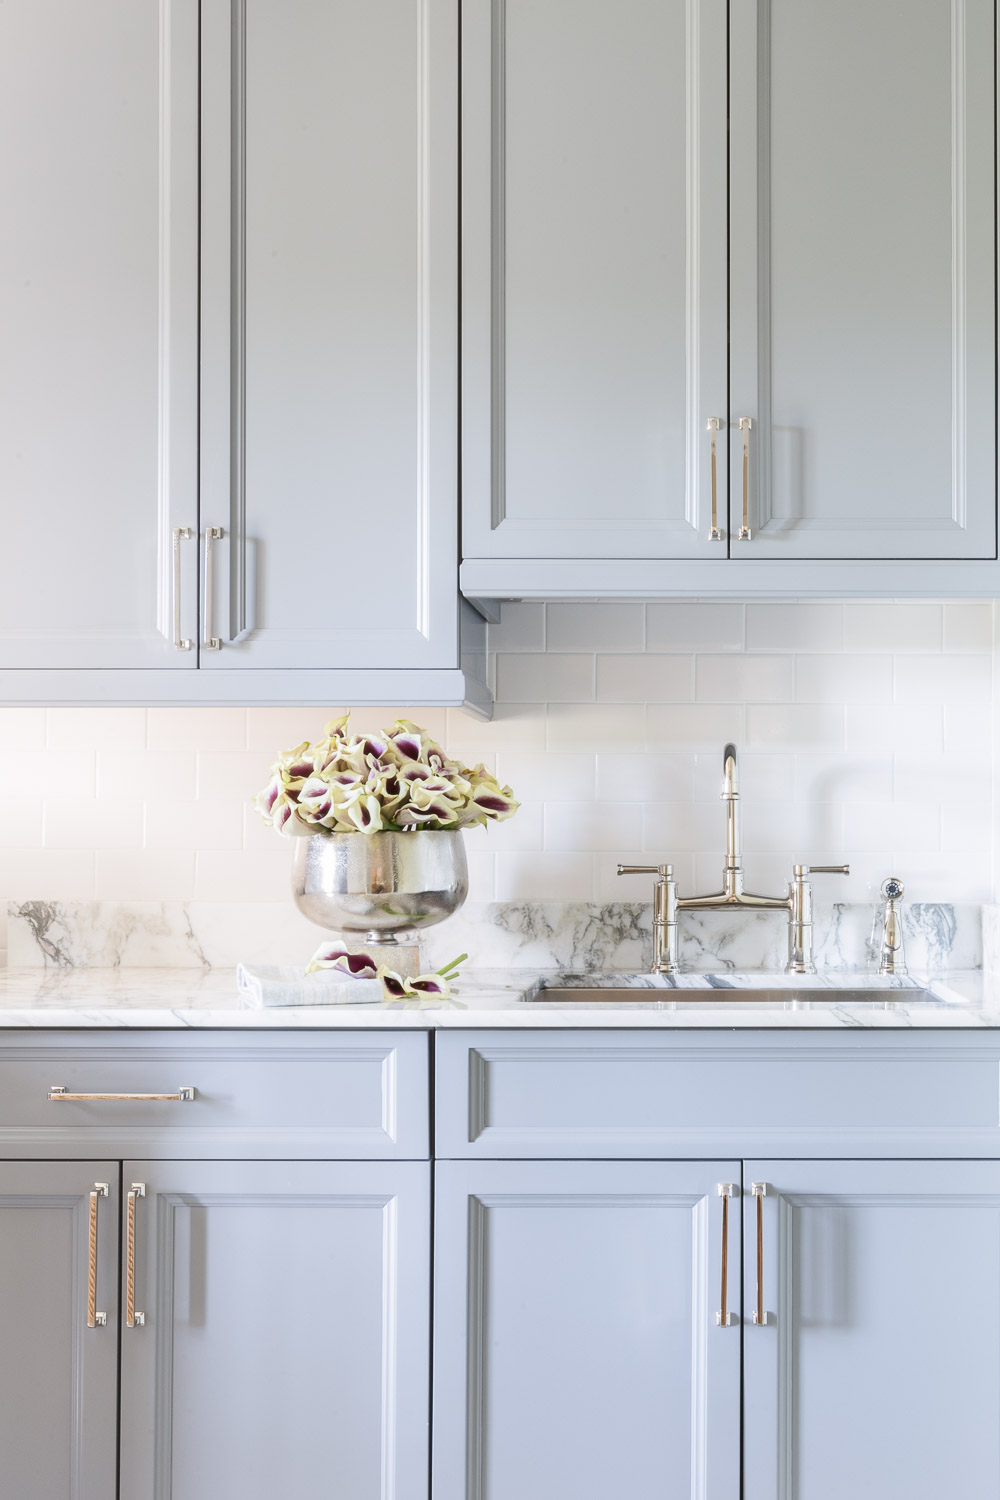 Brynn Olson S Birmingham Alabama Abode Home Tour Aria Stone Gallery In 2020 Kitchen Inspirations Stone Kitchen Stone Gallery